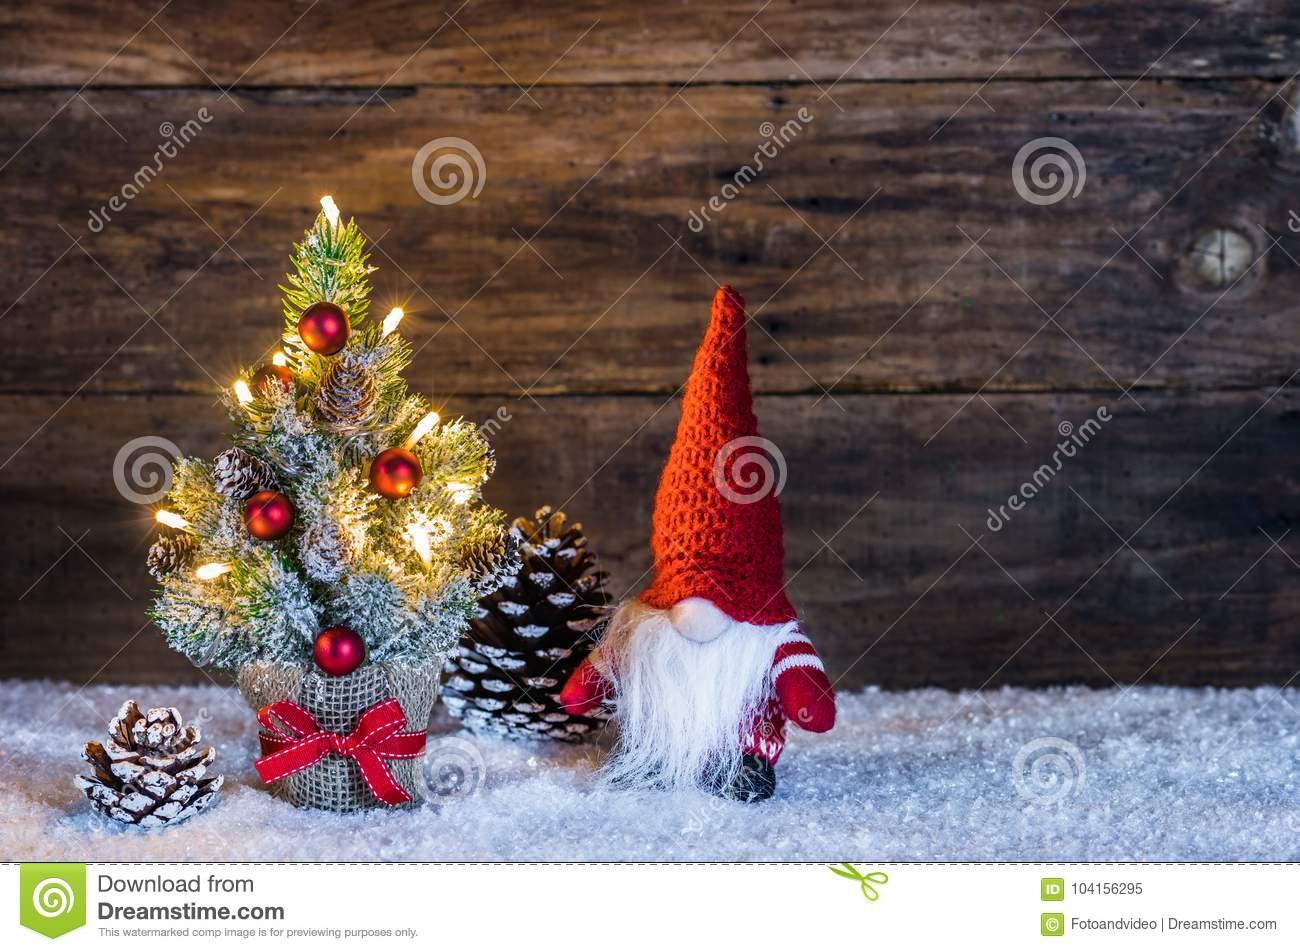 Christmas Tree Decoration With Santa Claus Christmas Gnome Stock Image Image Of Illuminated December 104156295